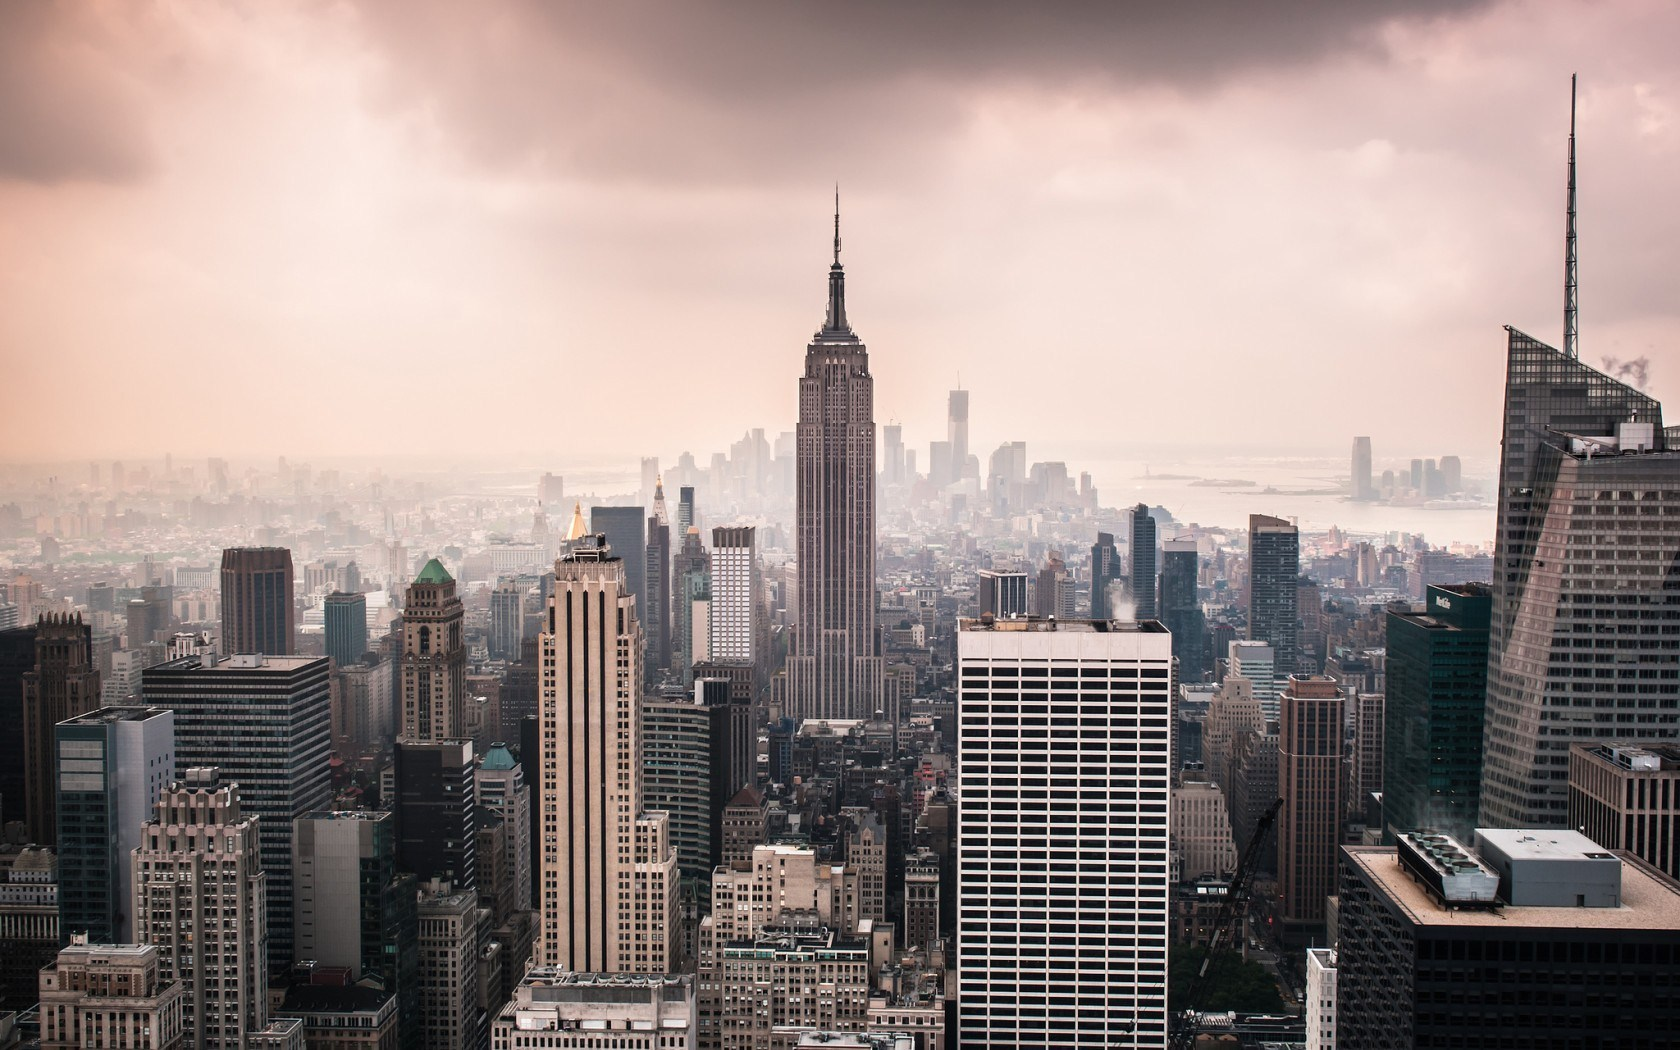 New York Skyline Wallpaper  WallpaperSafari